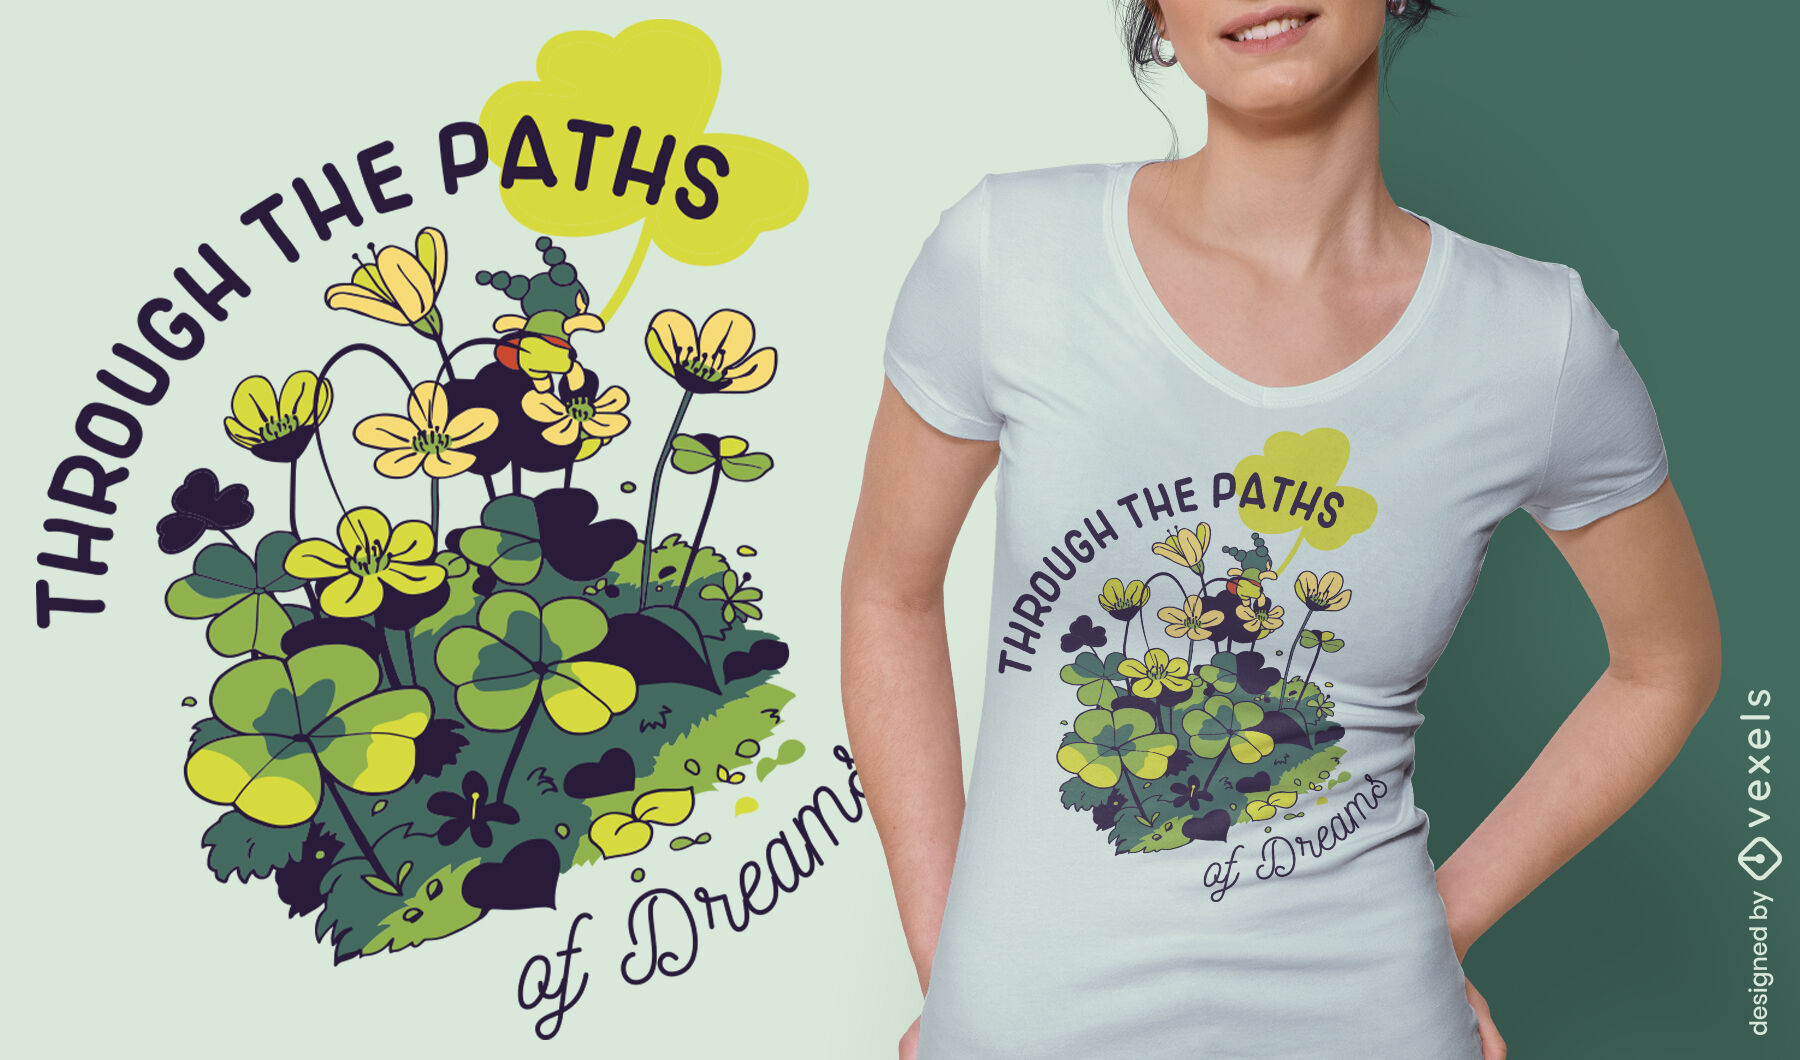 Tiny girl in flowers dreams quote t-shirt design